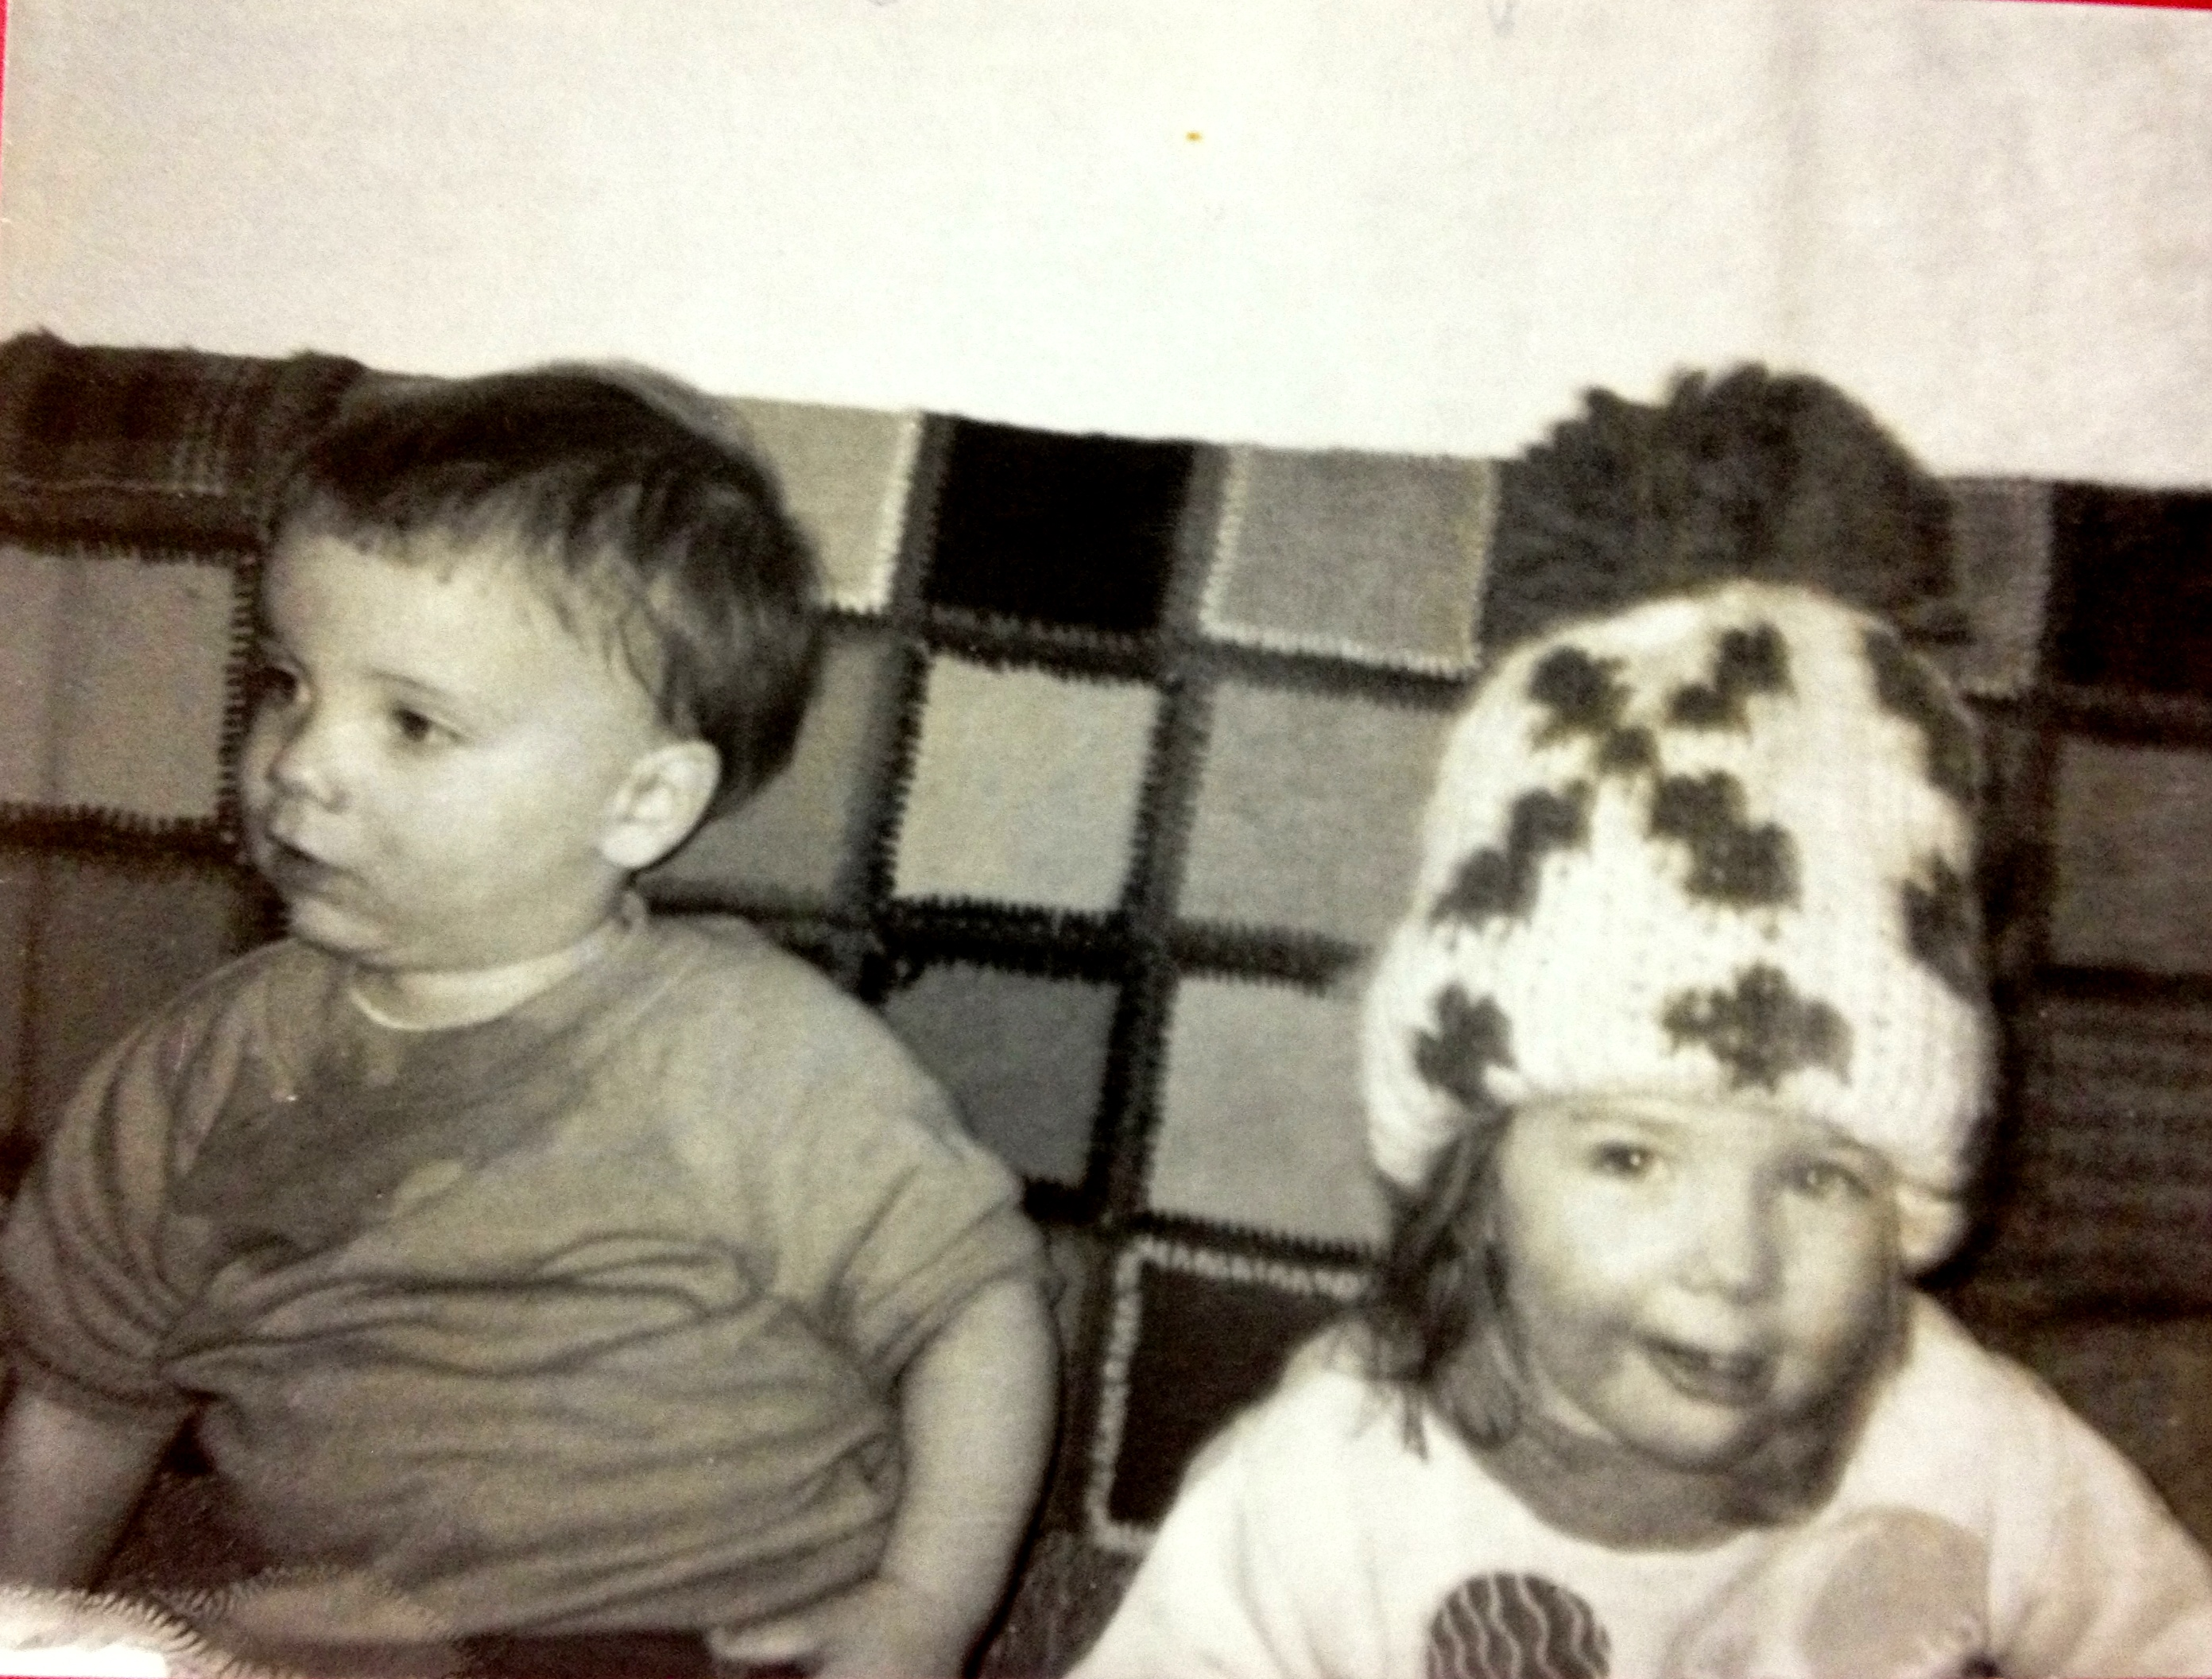 I'm not sure which is worse: Shelly's hat or my drool stains. I do have a pretty content look here, though. Just get me some nachos and find the remote. The game's on. (Cousin Shelly, Spring '69)